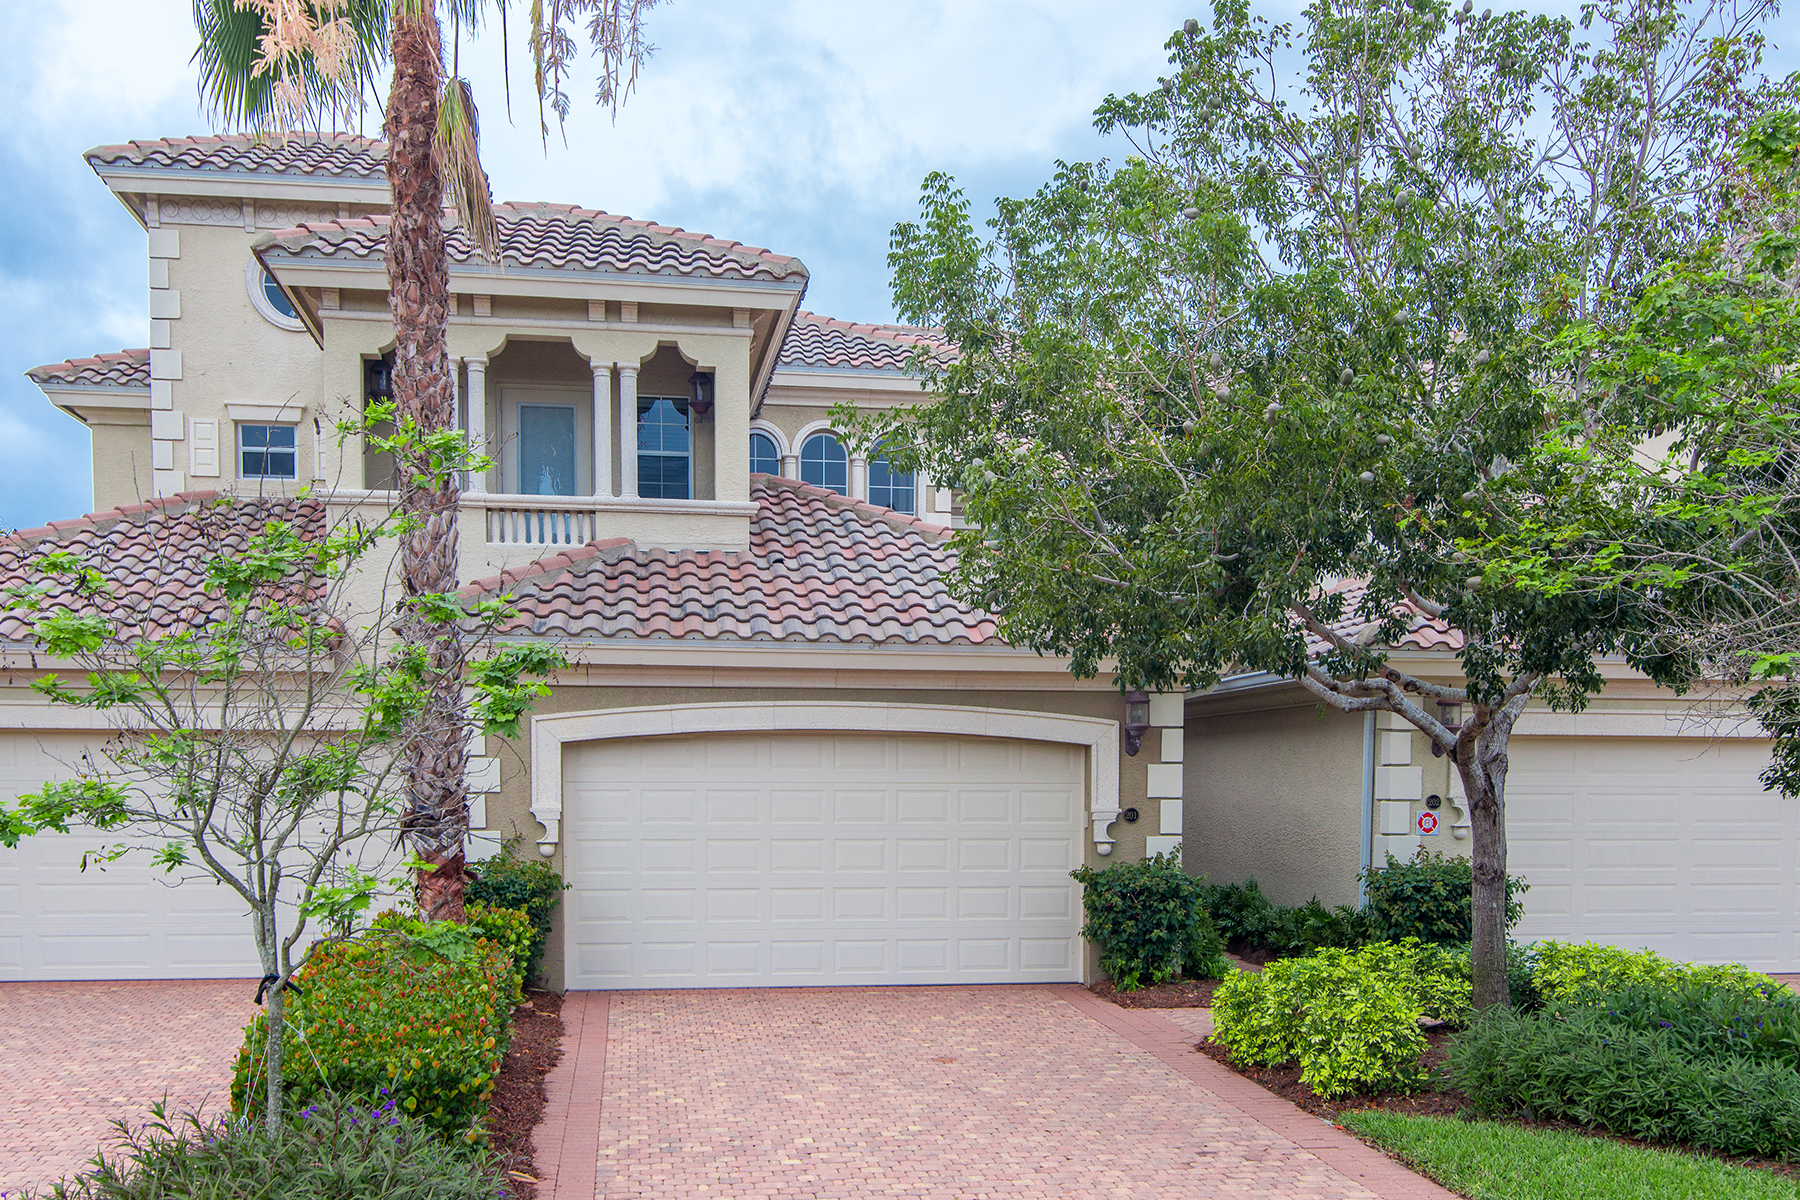 Condominium for Sale at FIDDLER'S CREEK - VARENNA 9217 Museo Cir 201 Naples, Florida, 34114 United States